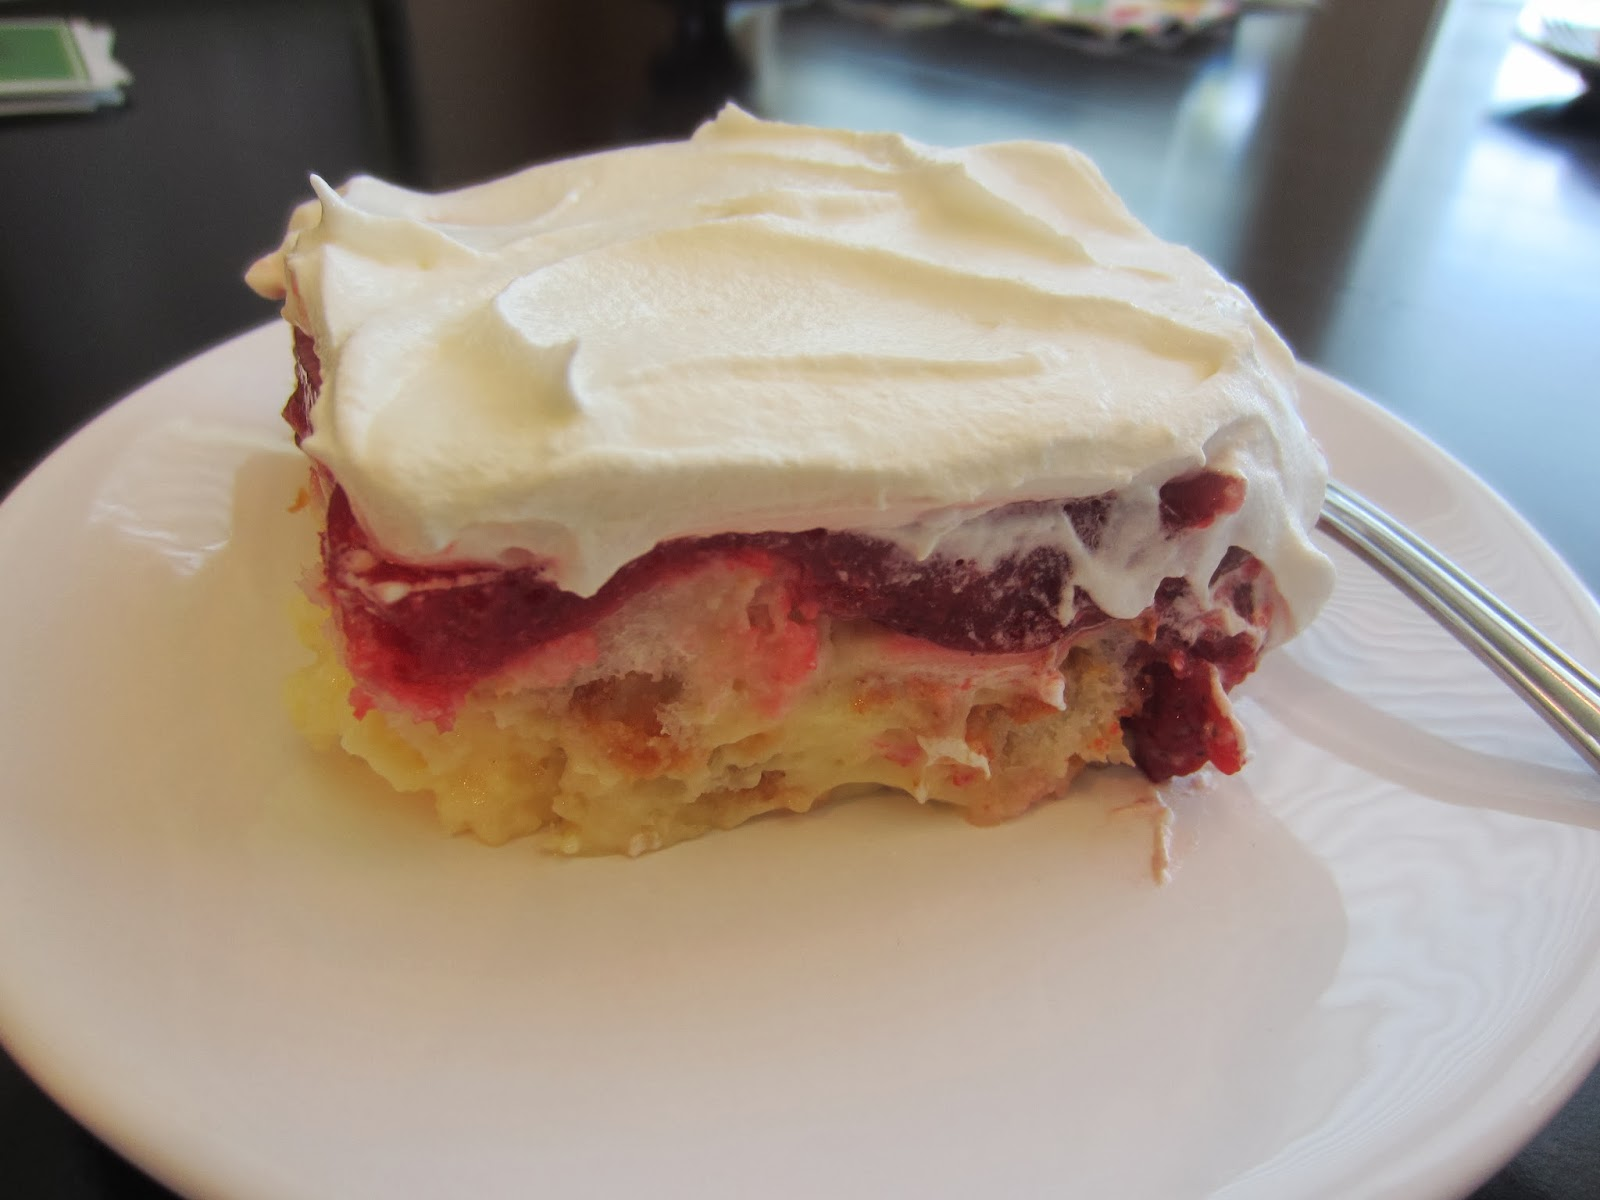 My Patchwork Quilt: STRAWBERRY ANGEL DESSERT